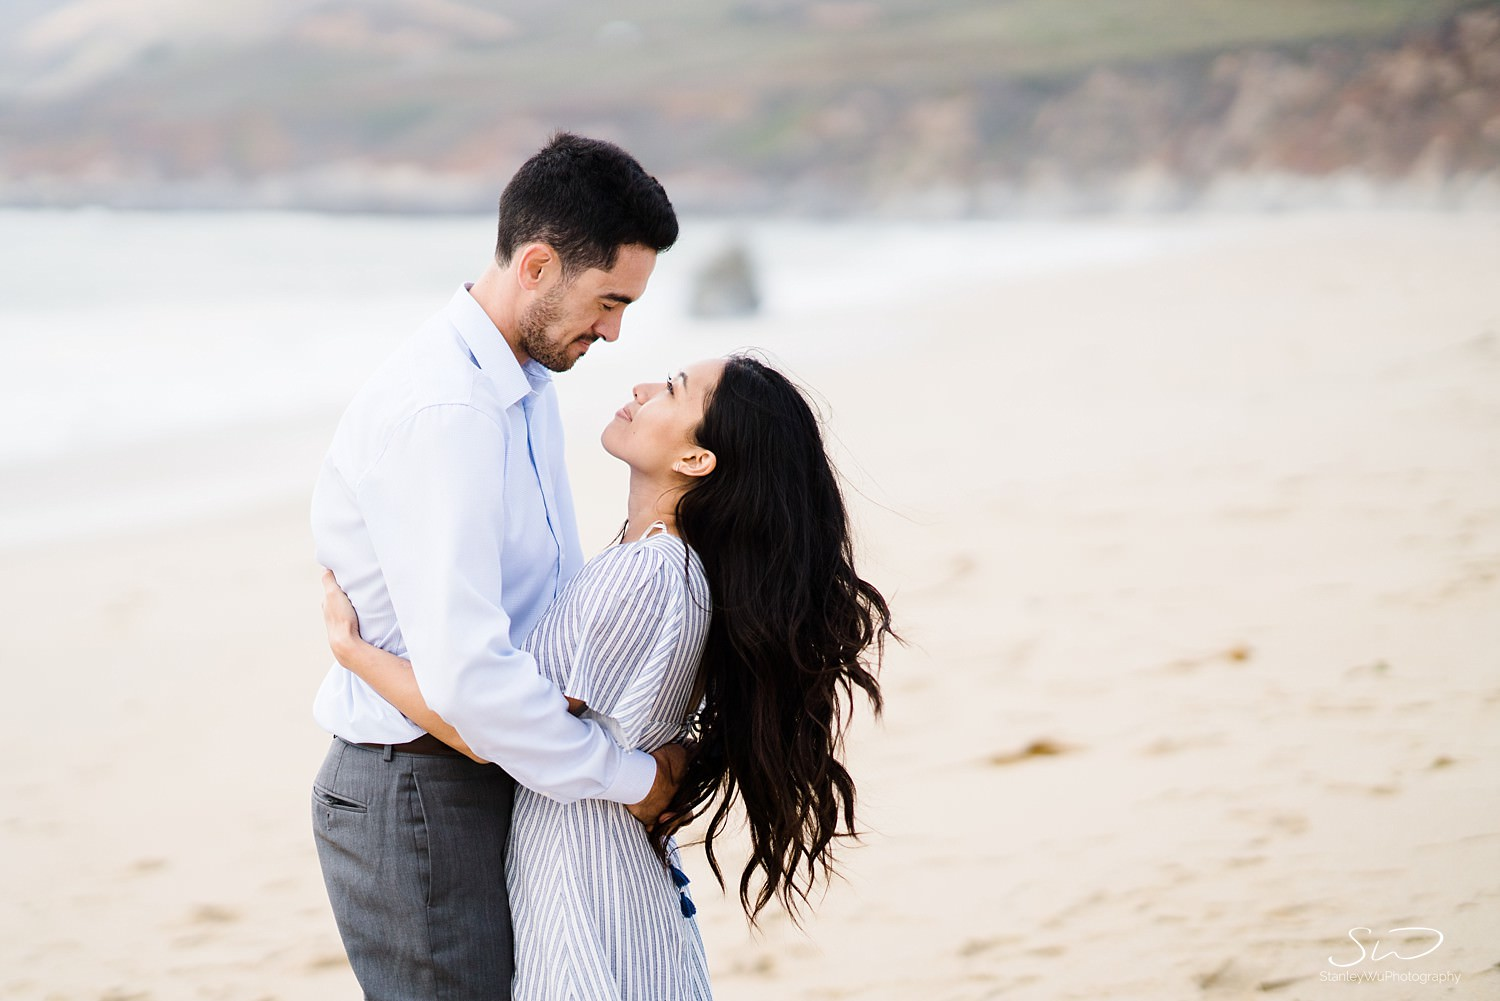 big-sur-travel-adventure-engagement-session_0040.jpg